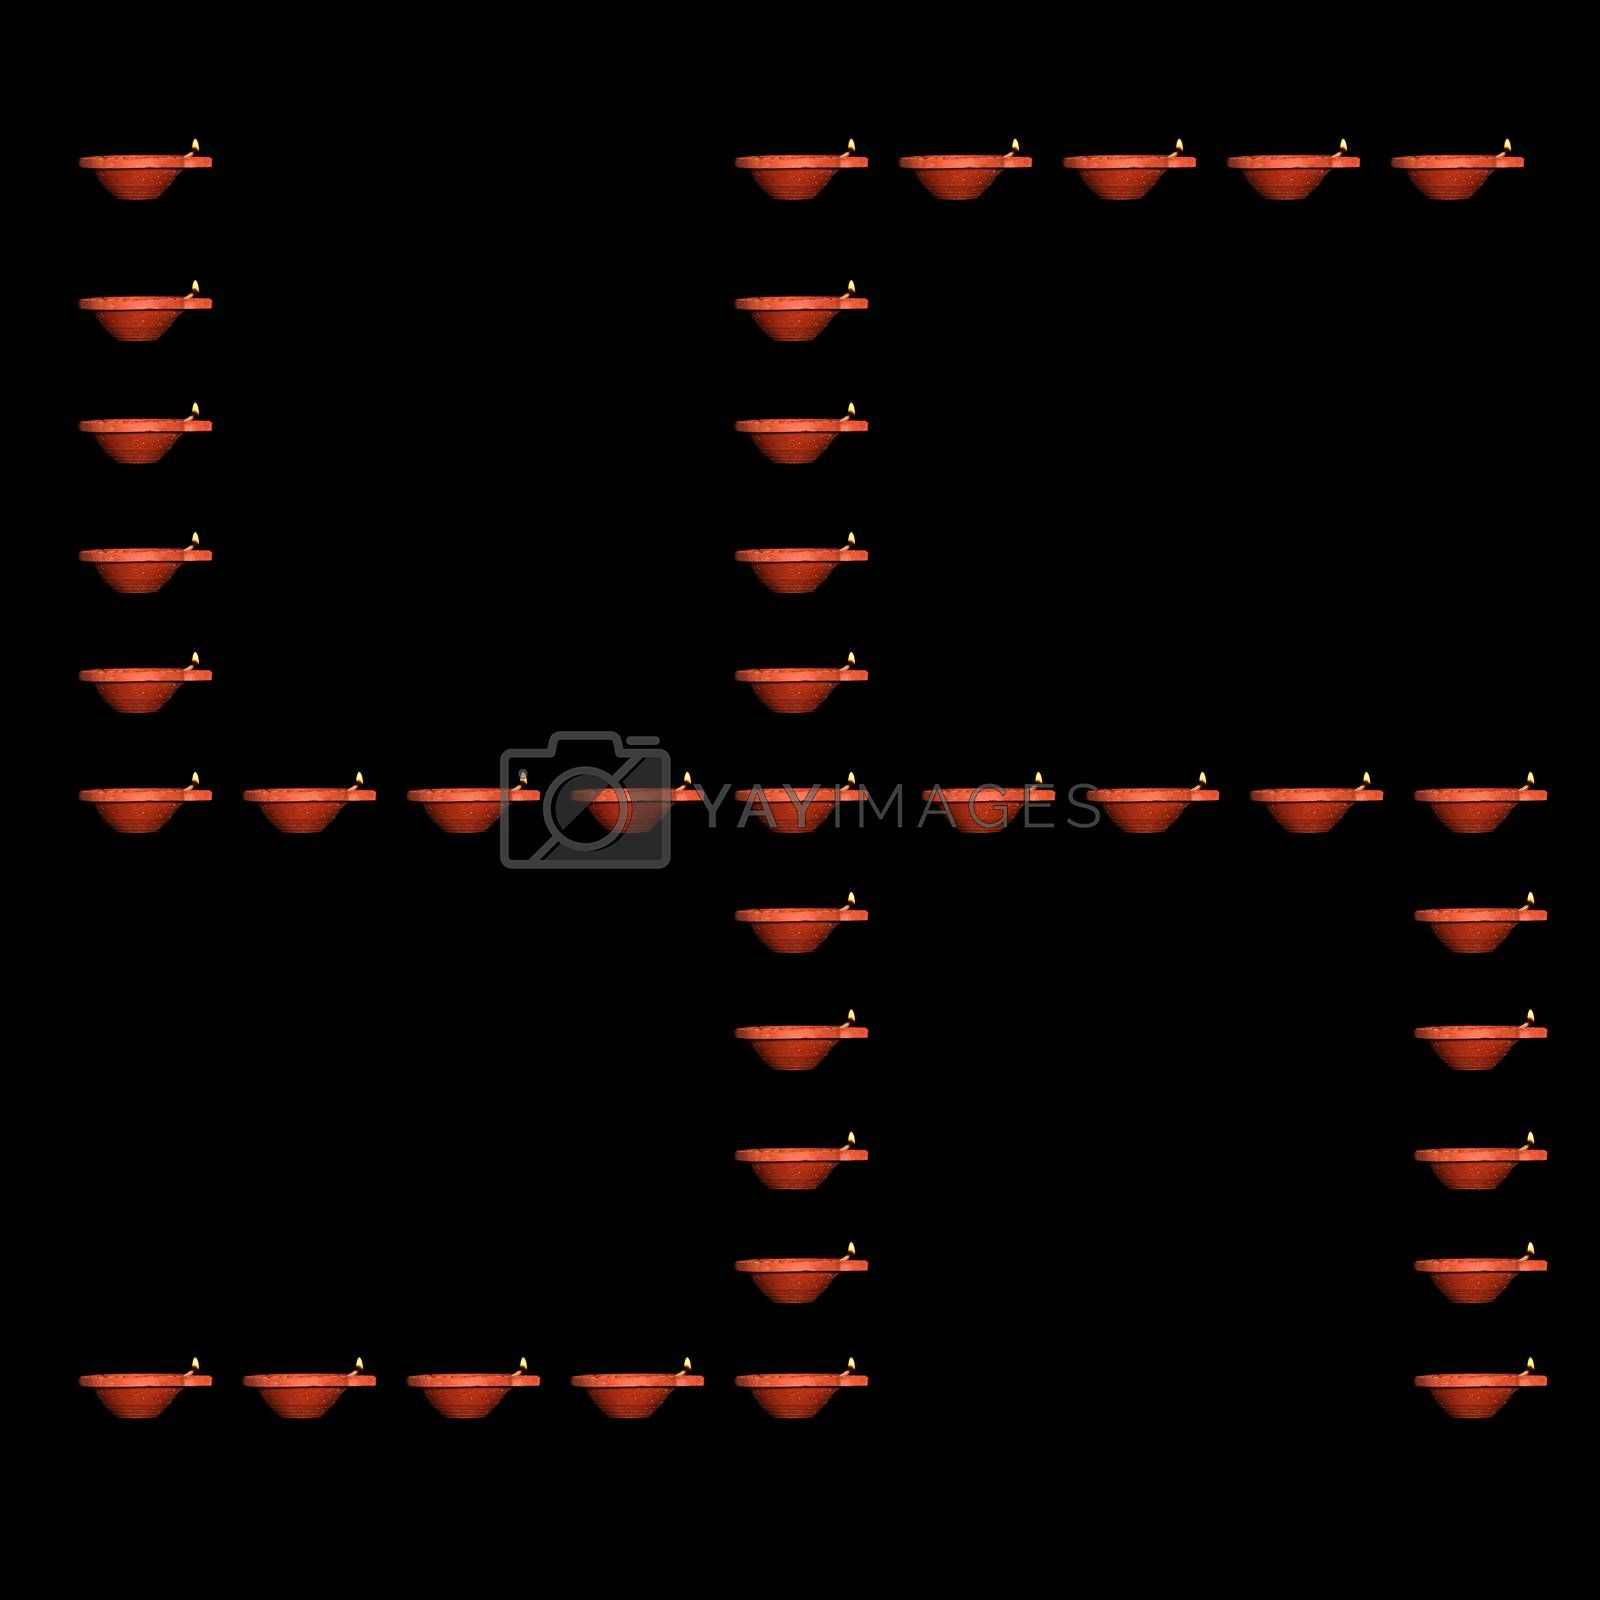 The holy Hindu auspicious symbol of Swastika made of traditional earthen Diwali Lamps on black background.